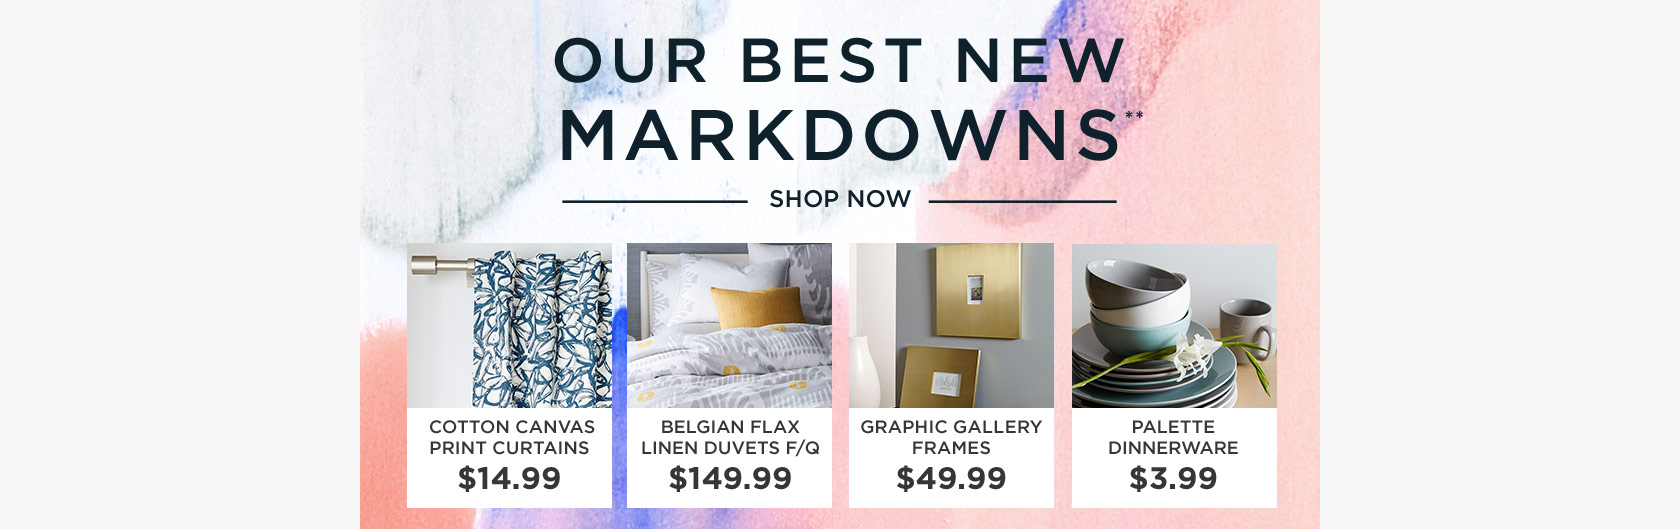 Our Best New Markdowns